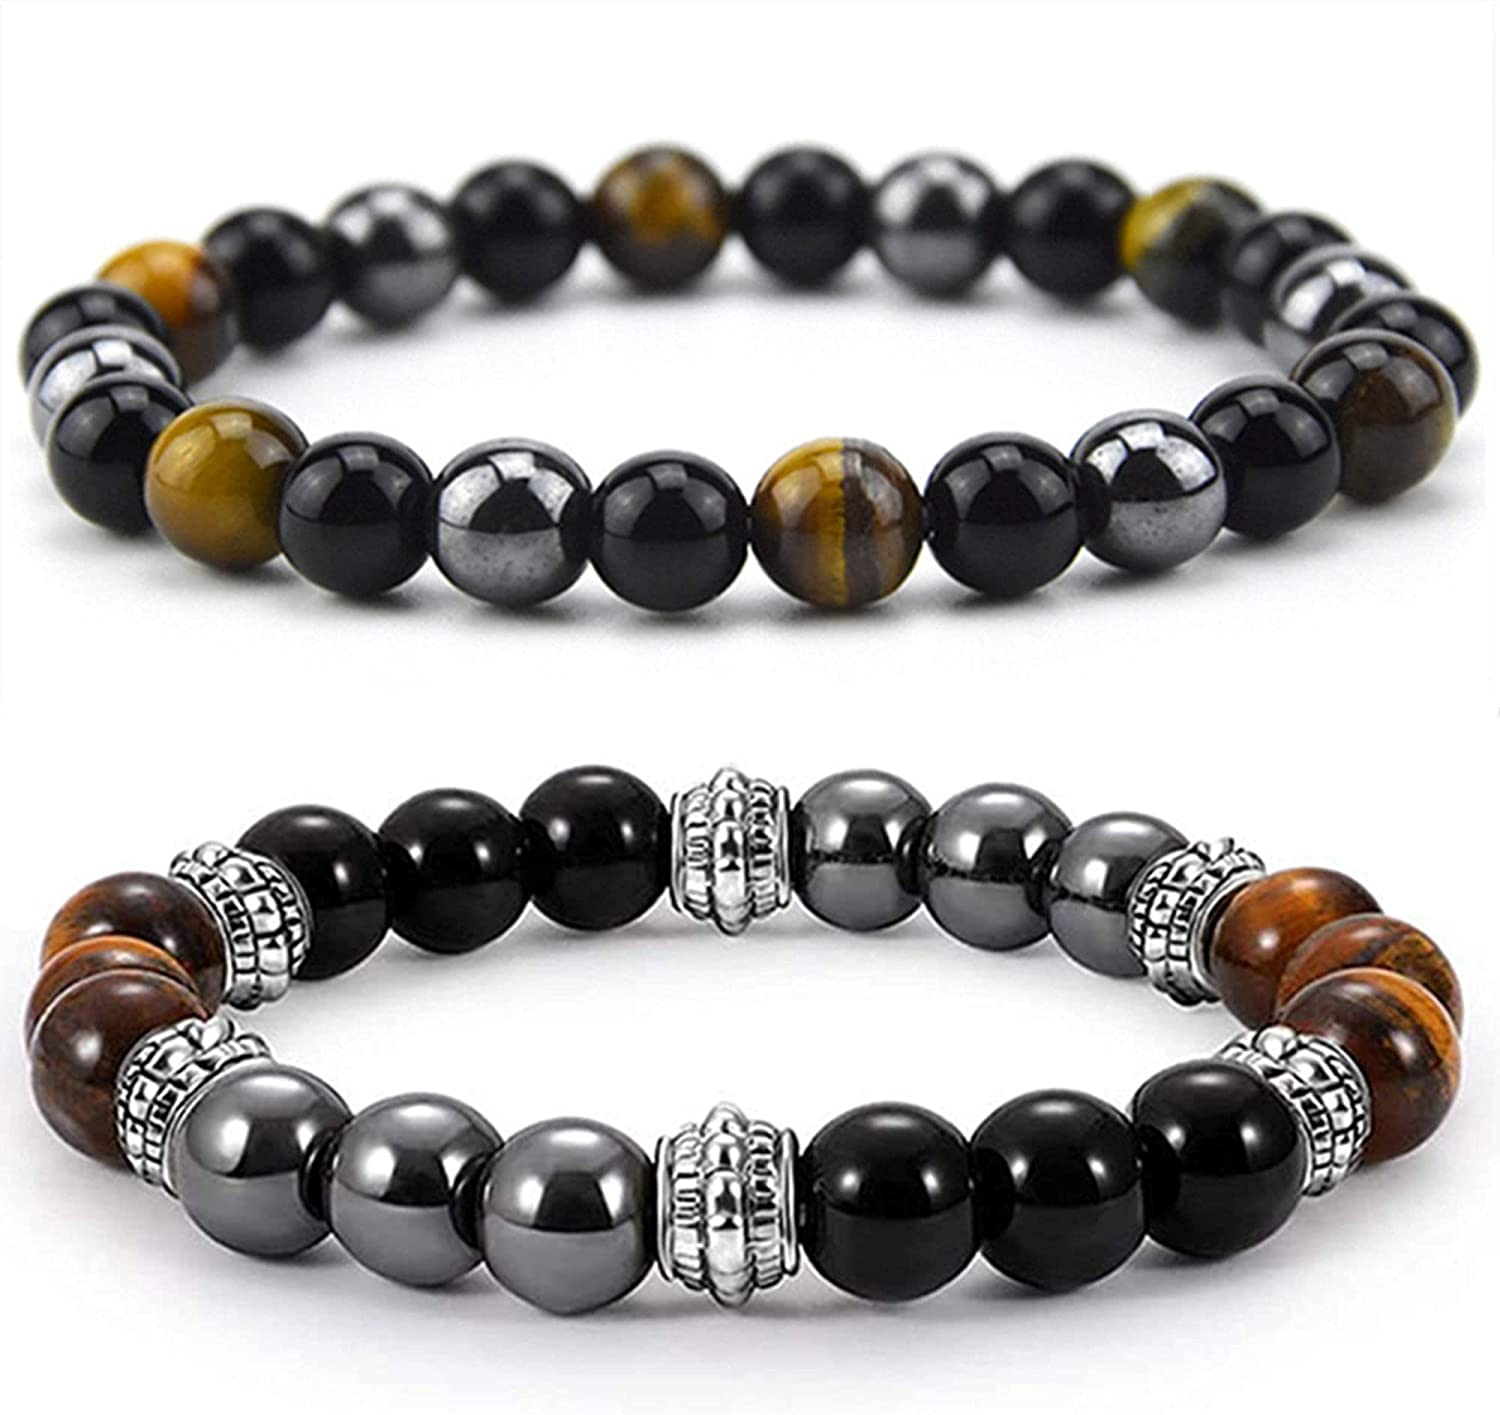 Triple Protection Bracelet Super popular specialty store for Overseas parallel import regular item Bring and Hematit Luck Prosperity